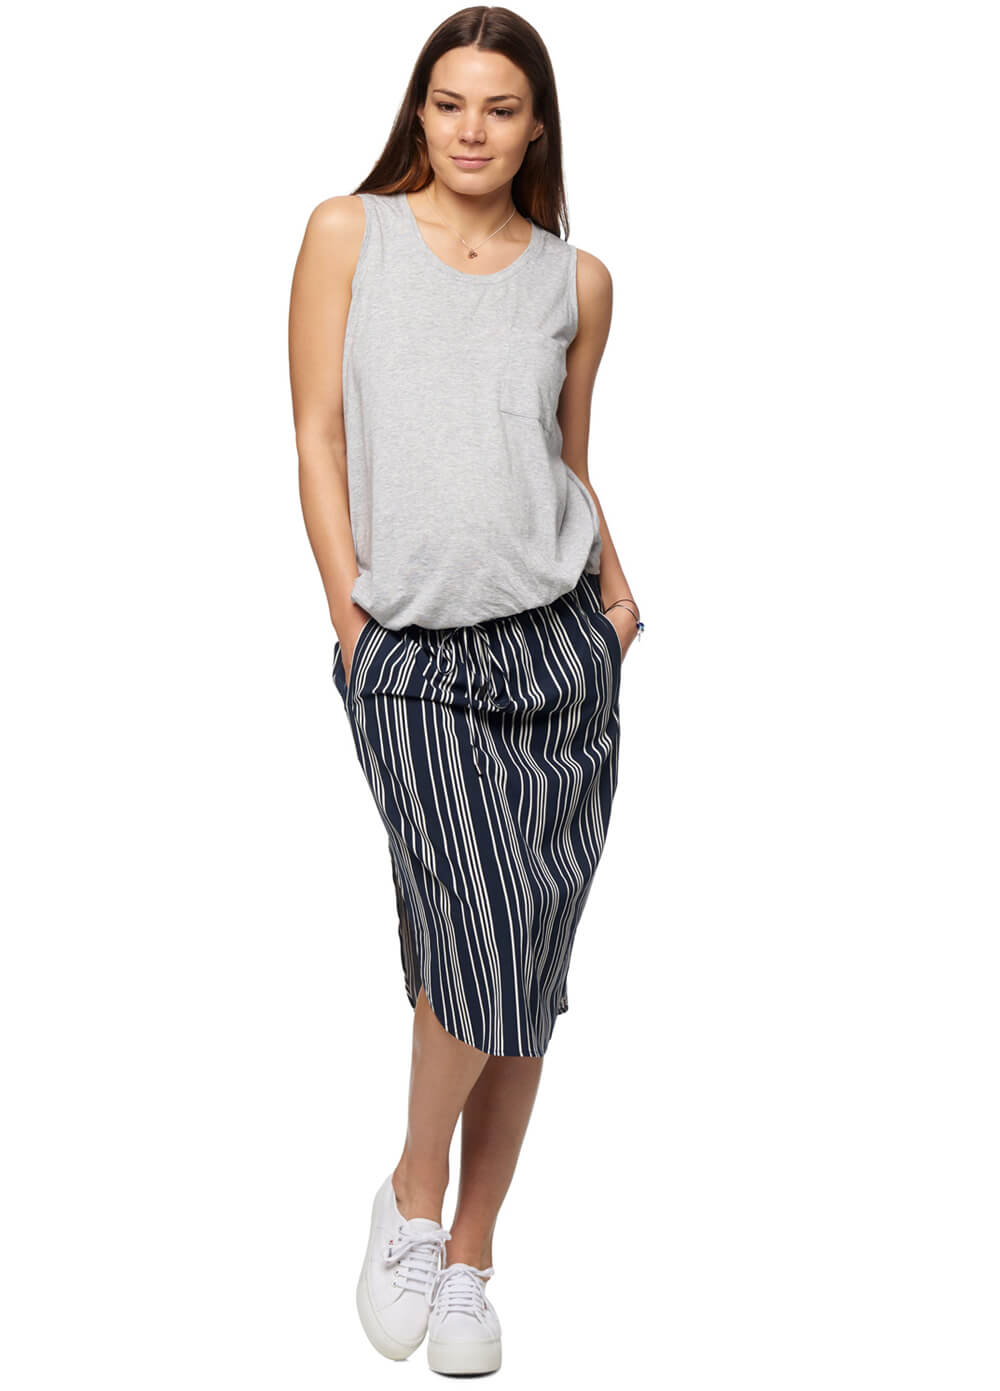 Mind Over Matter Maternity Skirt in Navy Stripes by Bae The Label